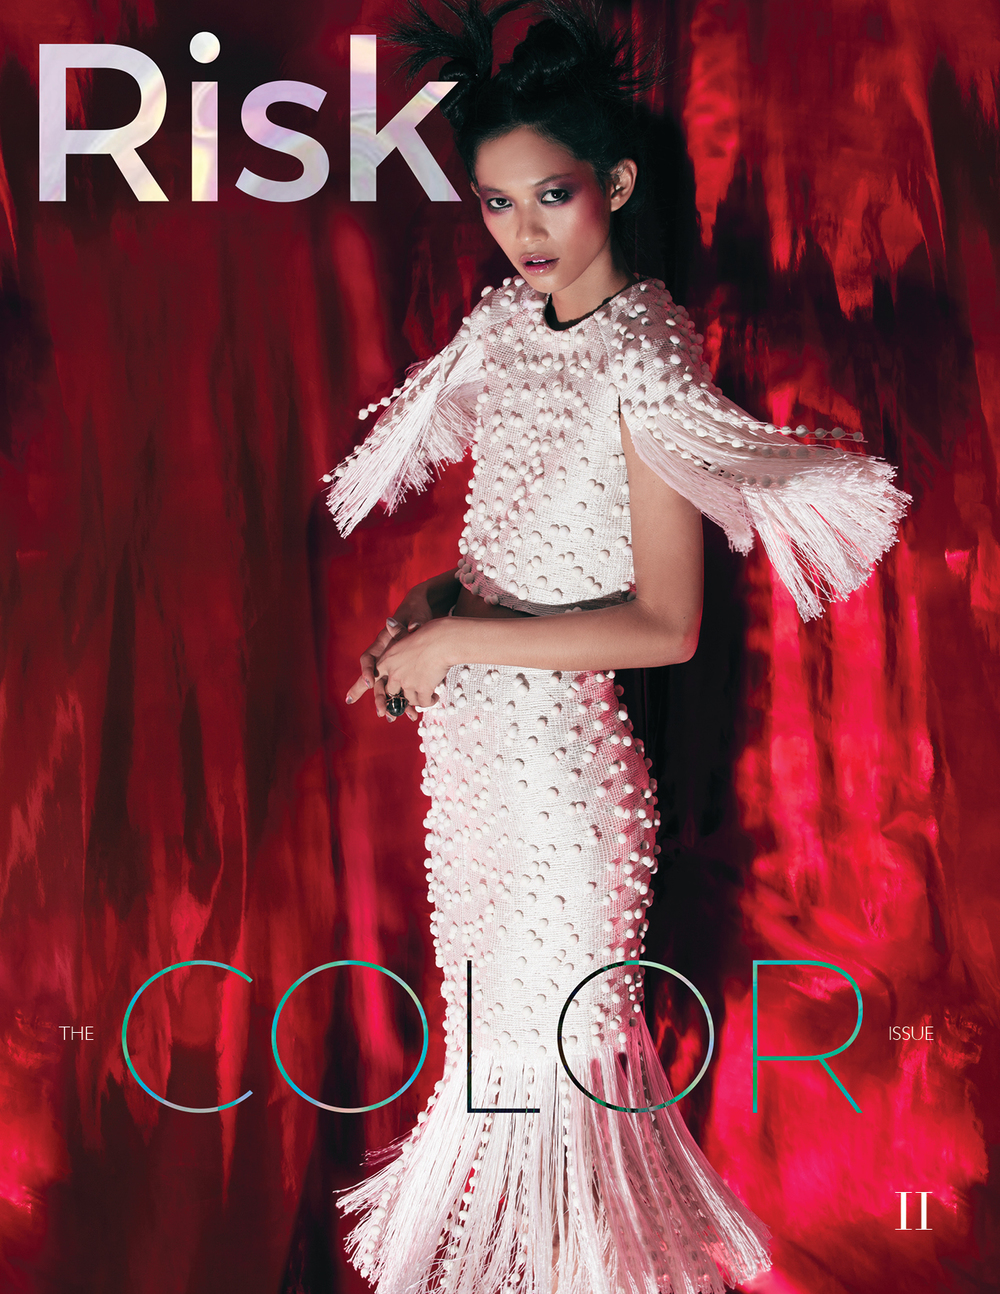 RISK II: THE COLOR ISSUE (Cover 1) BUY PRINT $30.00 BUY DIGITAL $5.00